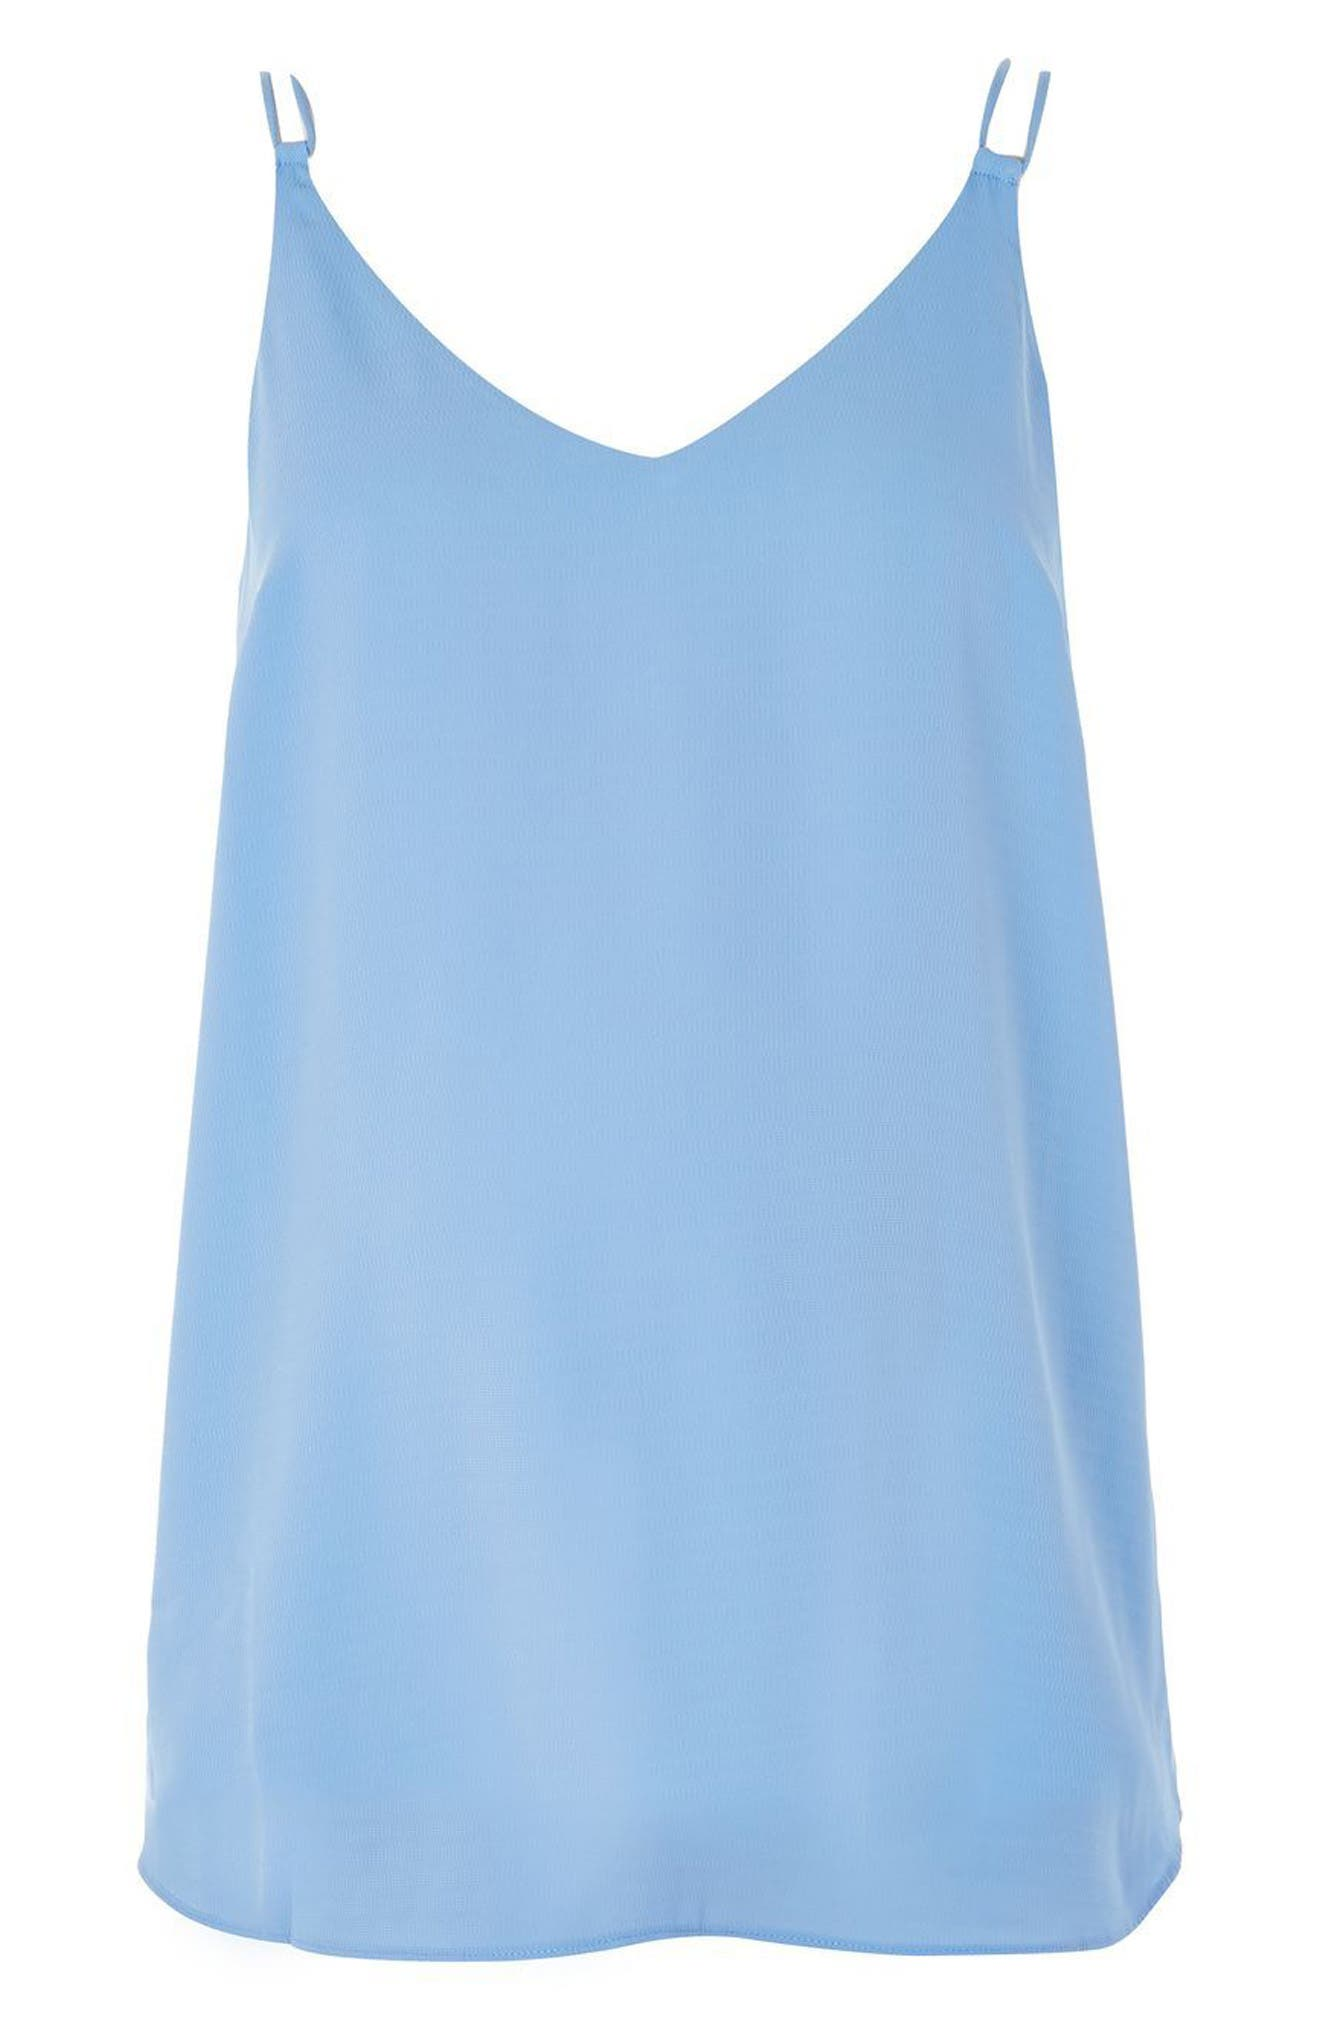 Topshop Swing Maternity Camisole